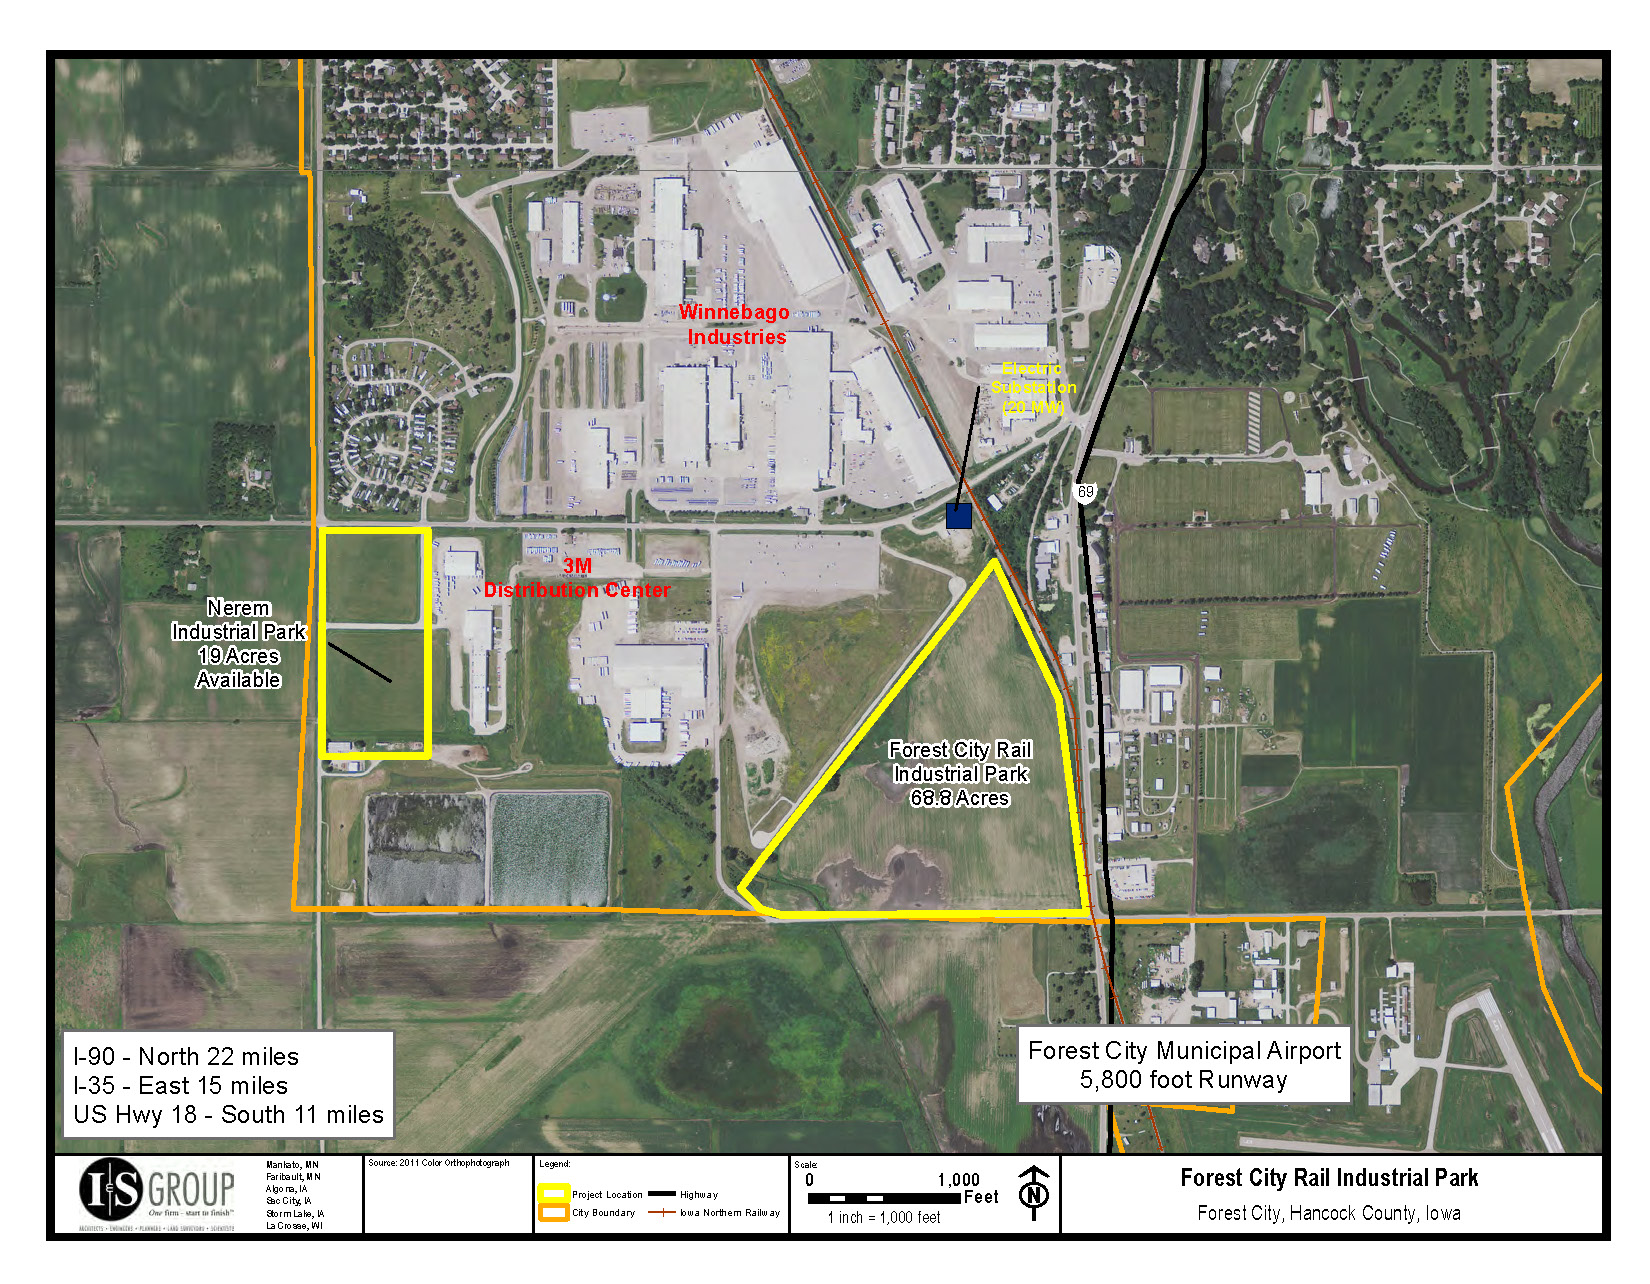 Industrial Rail Park Certified Site Forest City Iowa - Park and forest land us map